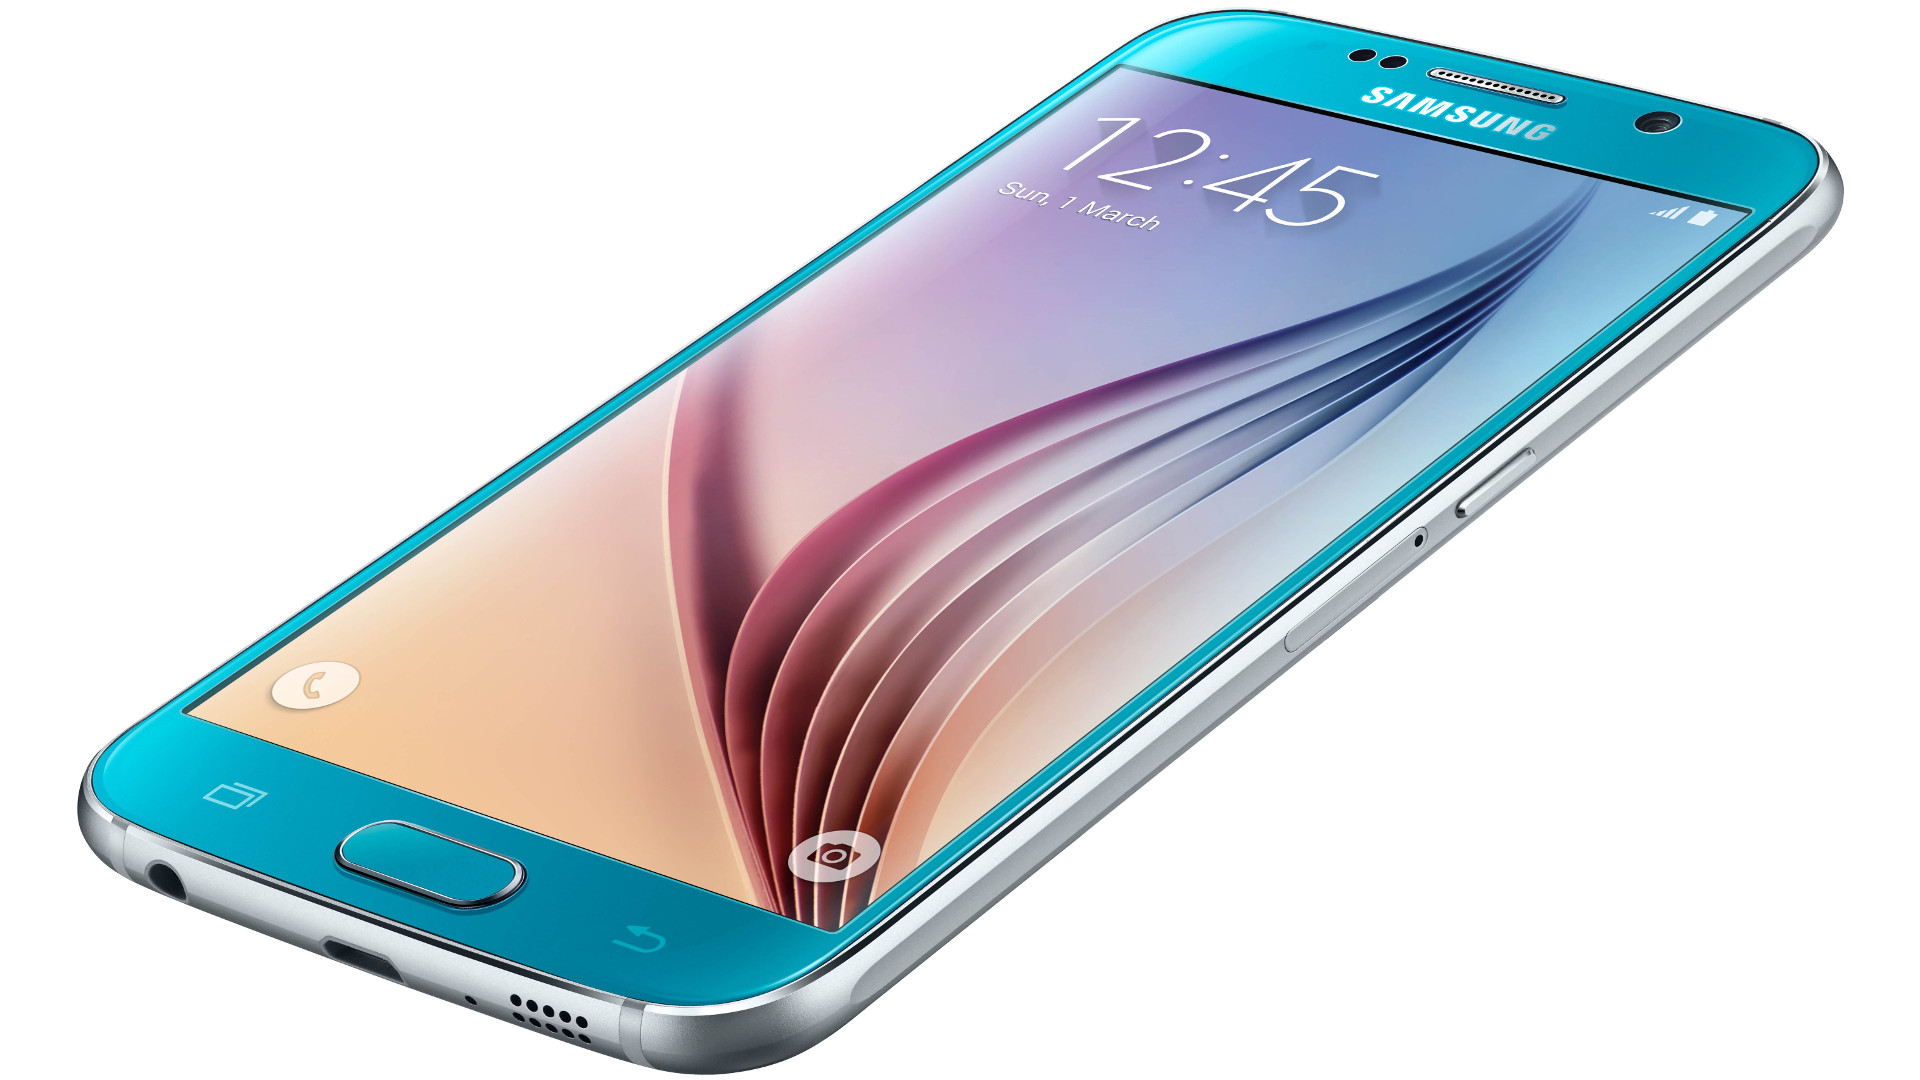 Cricket Wireless Samsung Galaxy S6 Wire Center American Standard 4800000 Parts List And Diagram Ereplacementparts Global 128gb For Smartphone In Rh Cellularcountry Com